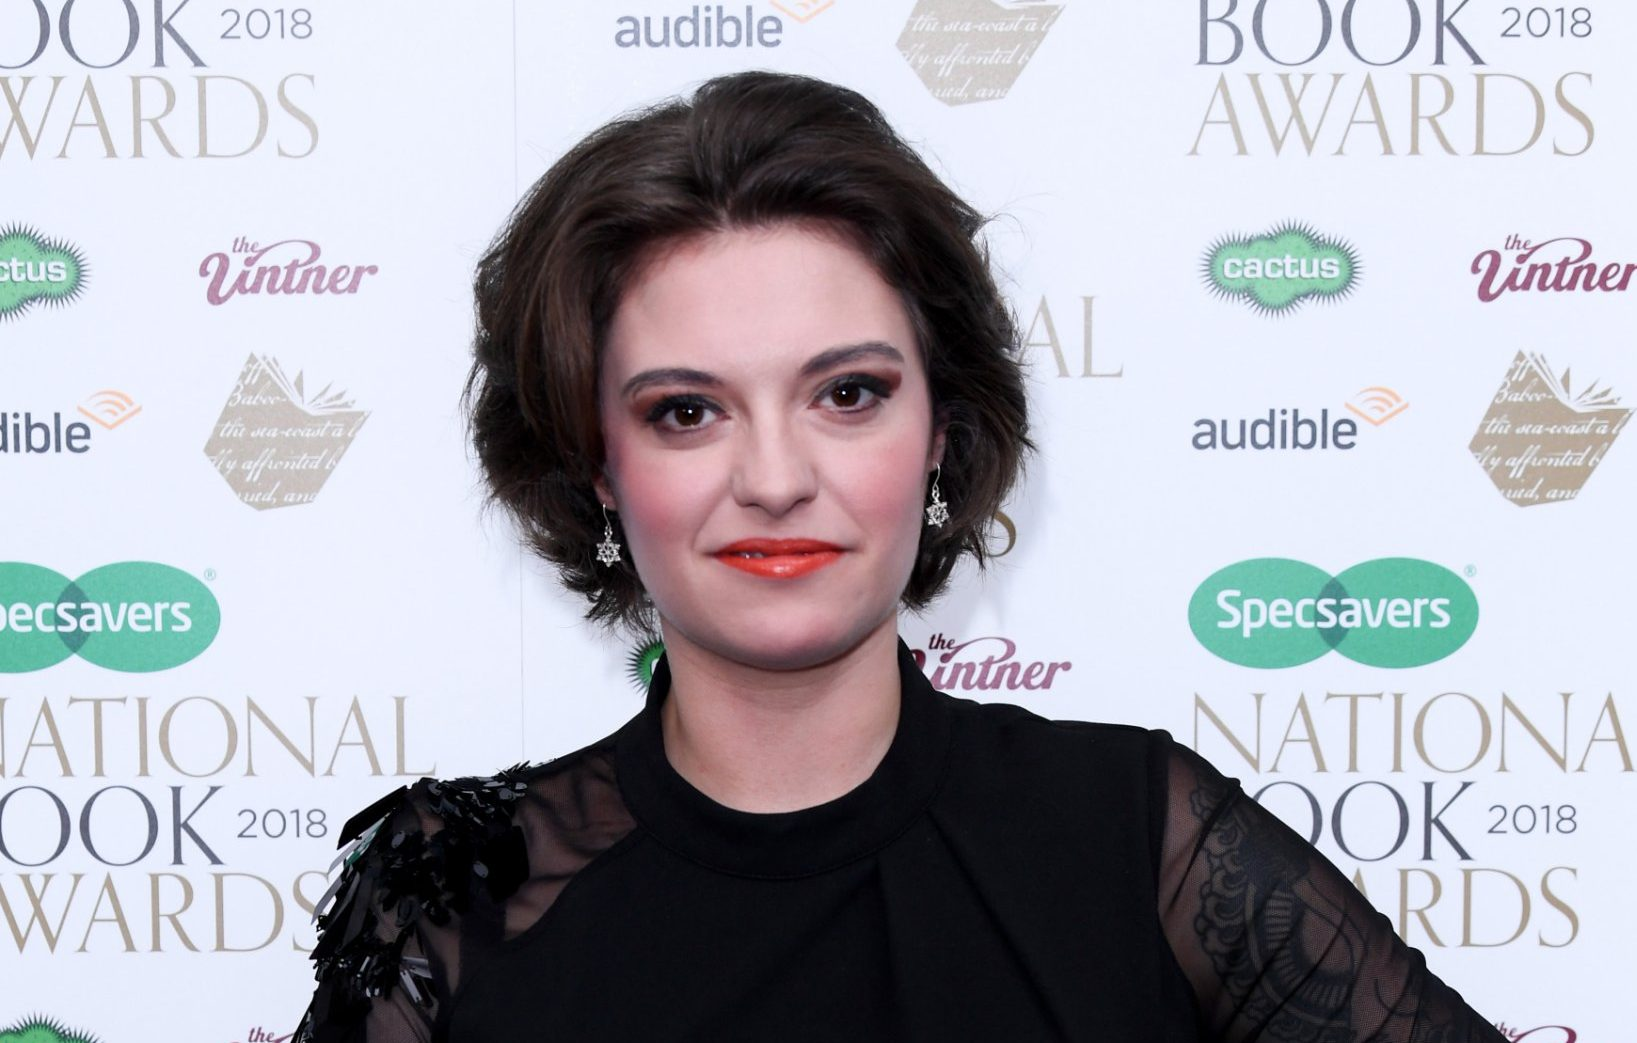 Mandatory Credit: Photo by David Fisher/REX/Shutterstock (9988320y) Jack Monroe The National Book Awards, London, UK - 20 Nov 2018